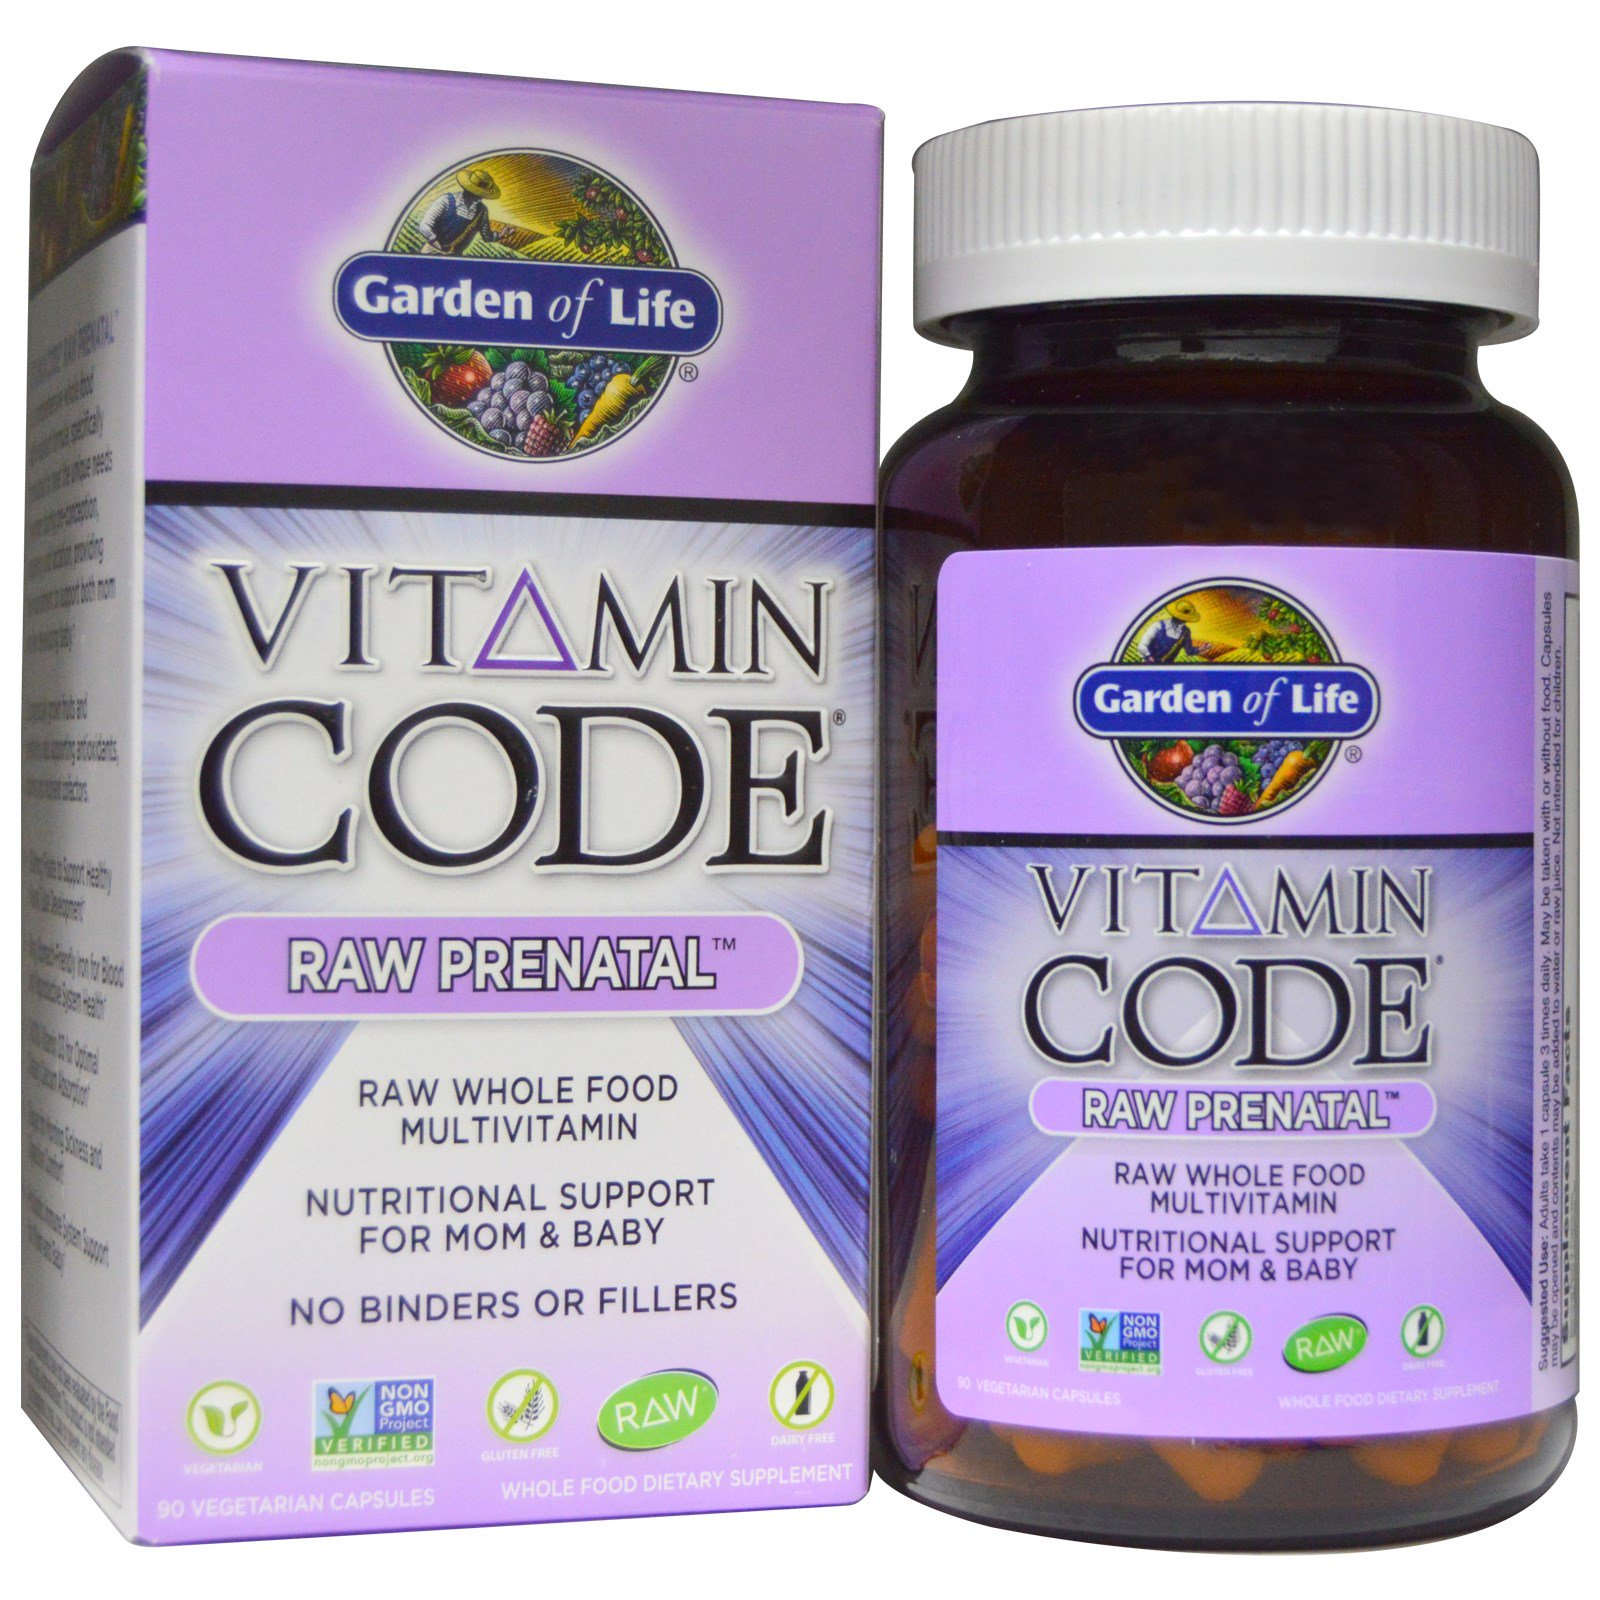 vitamin code wiser garden evolution capsules of life organics men